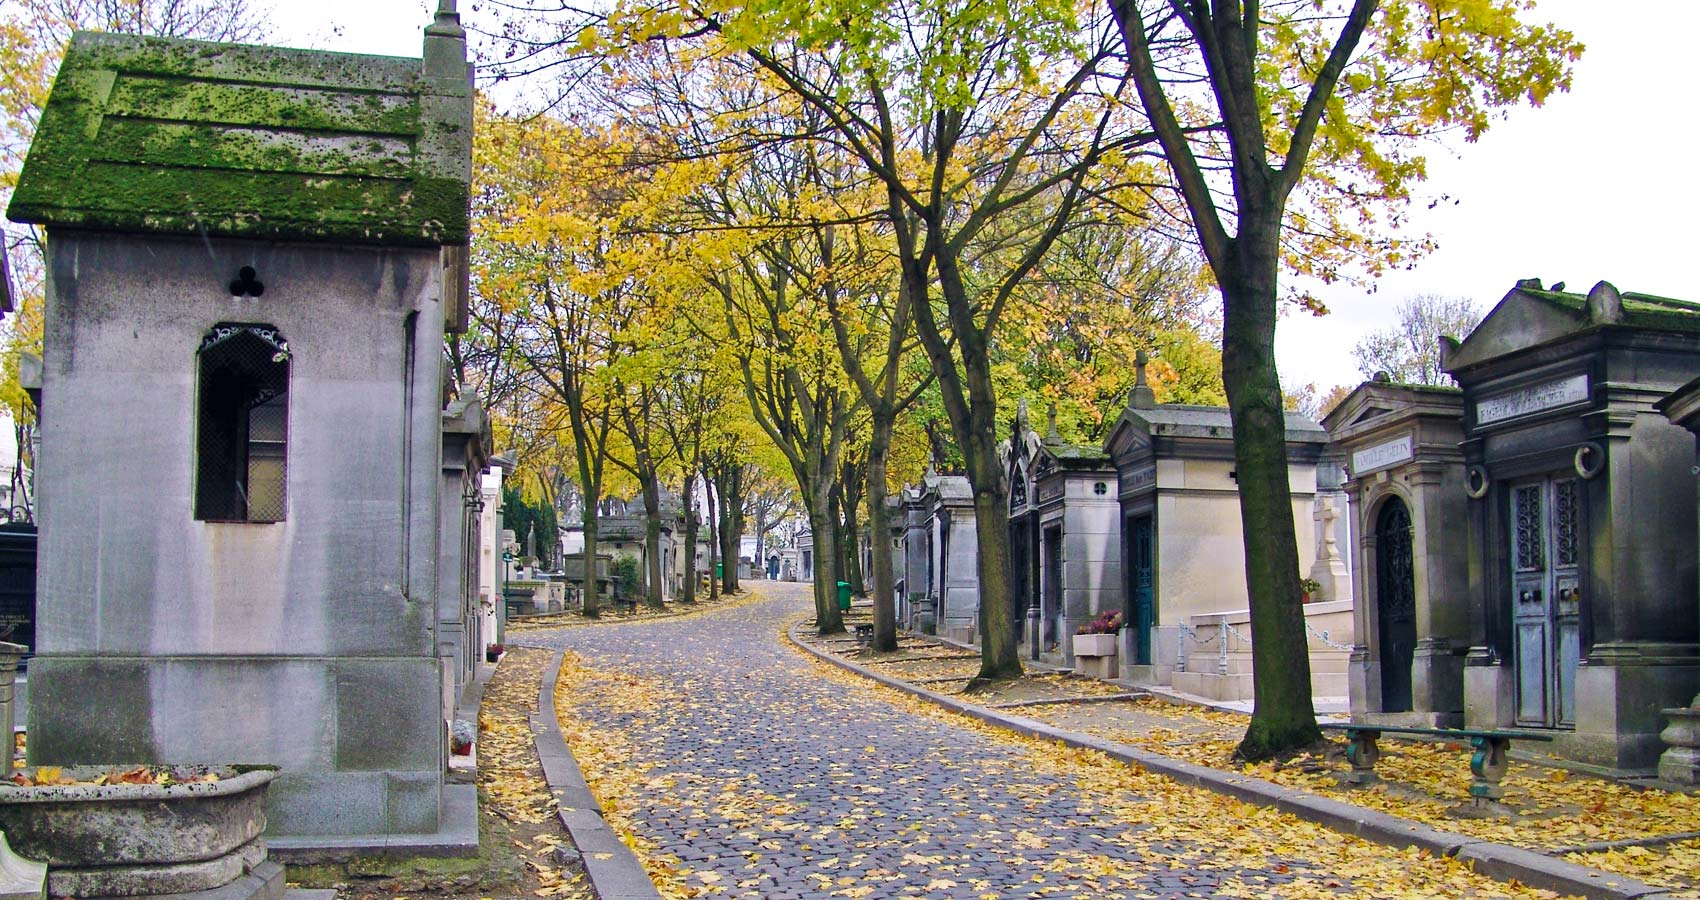 Cmentarz na Père-Lachaise, poetry by Józefa Ślusarczyk-Latos at Spillwords.com